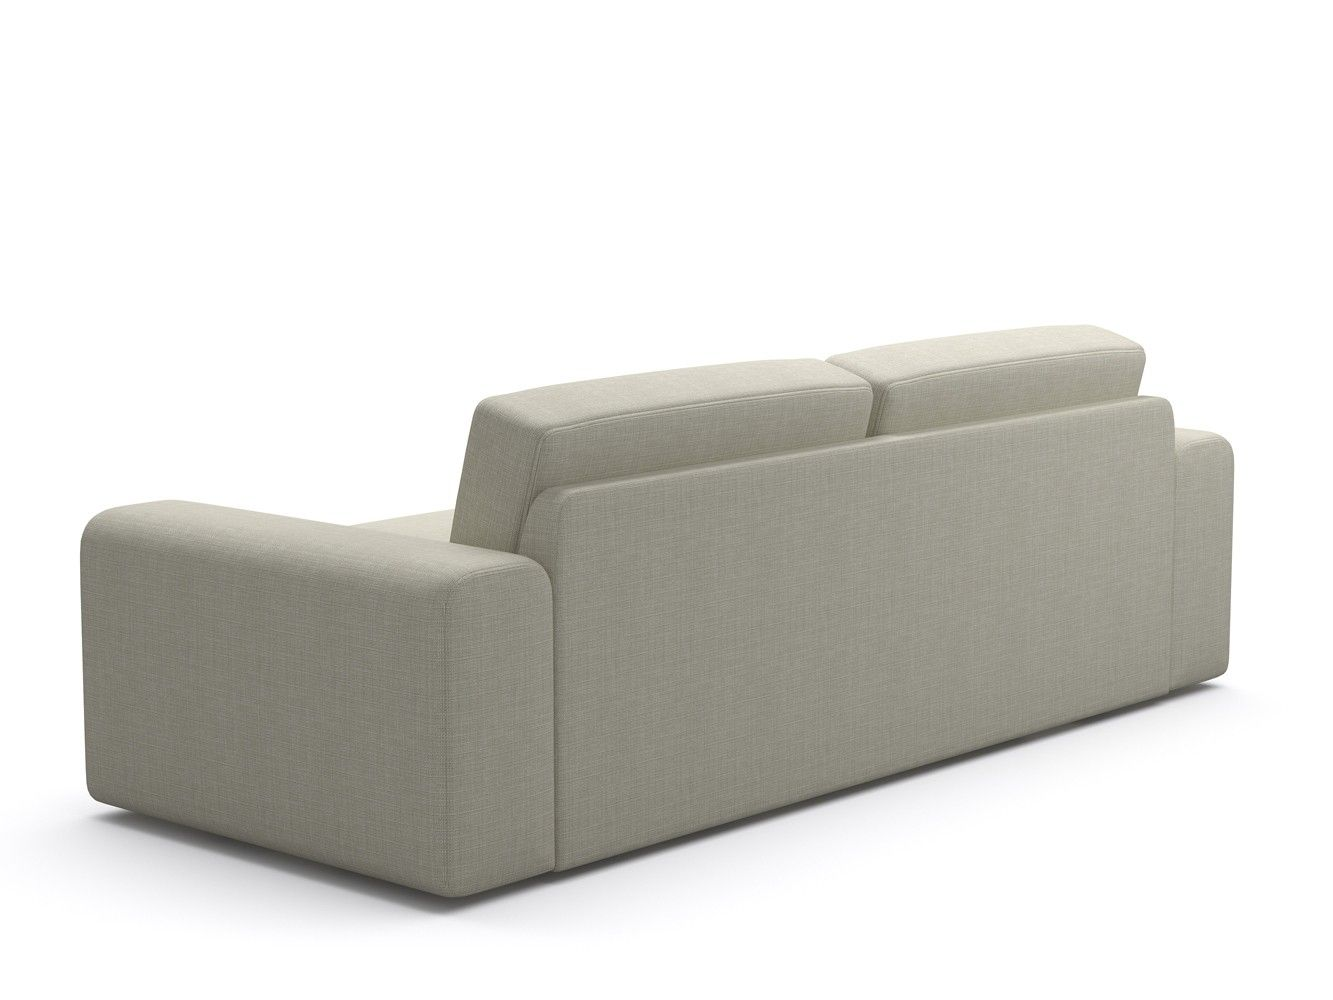 Couch Potato Sofa Sofa Couch Custom Couches